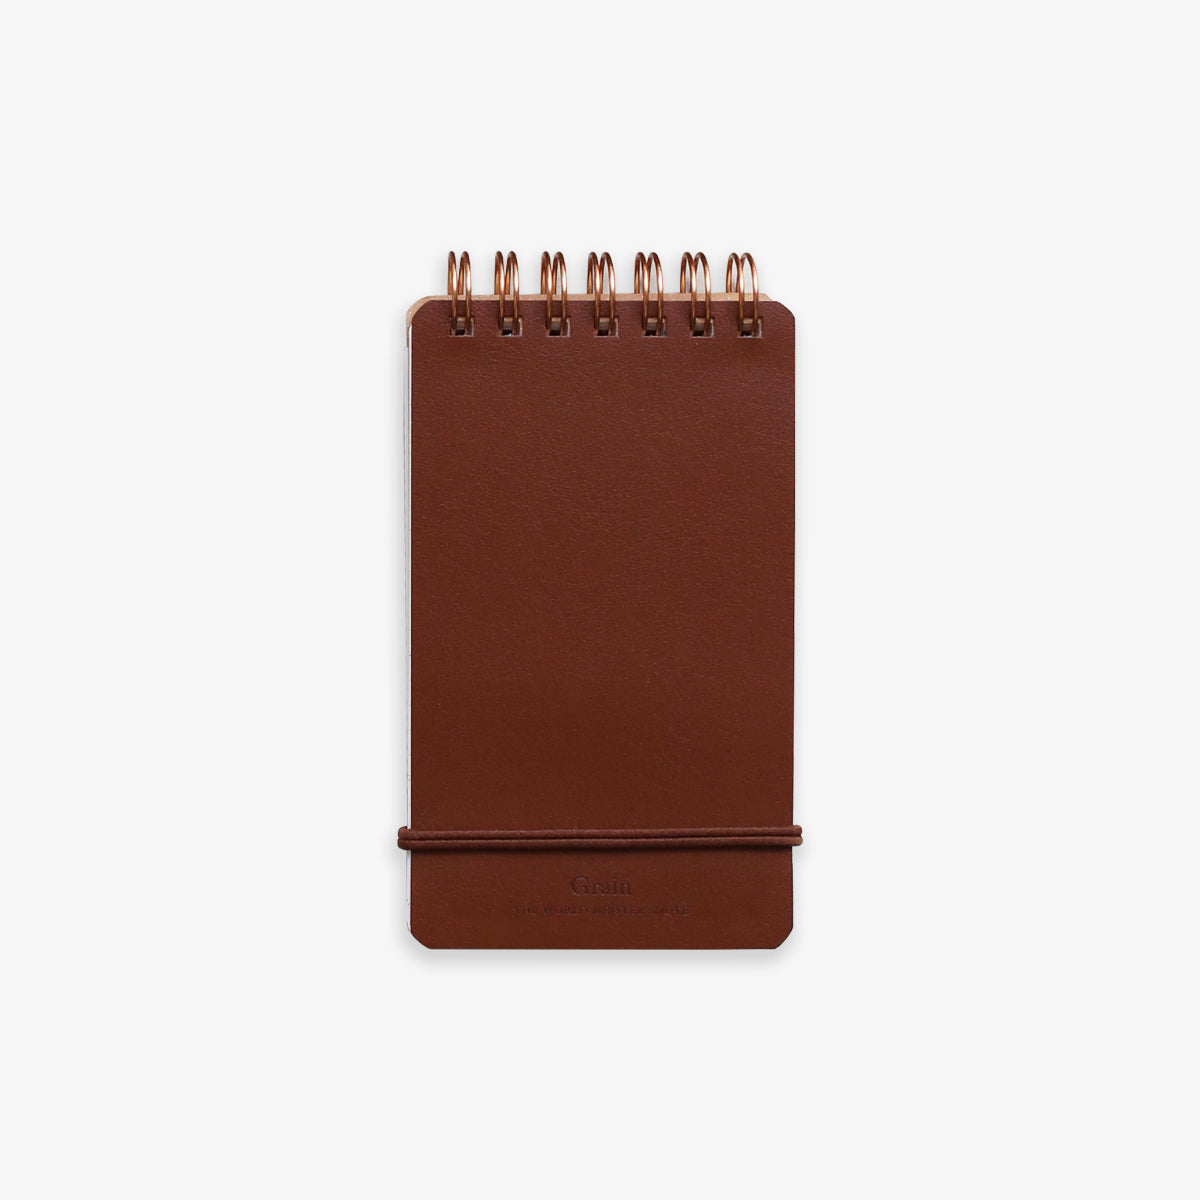 SPIRAL BOUND NOTEPAD // BROWN